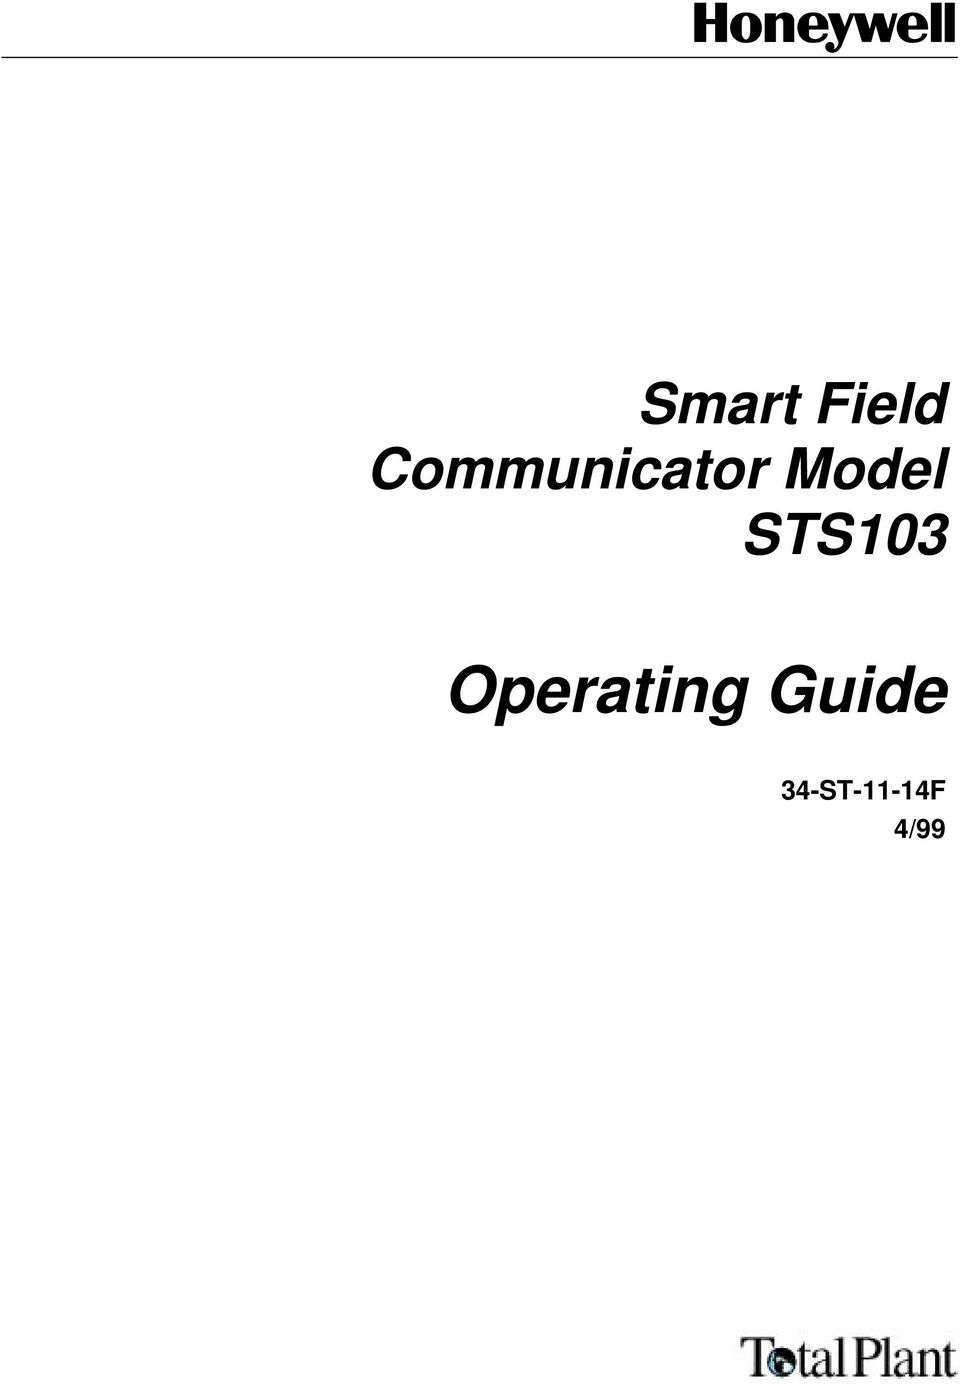 Smart Field Communicator Model STS103. Operating Guide 34